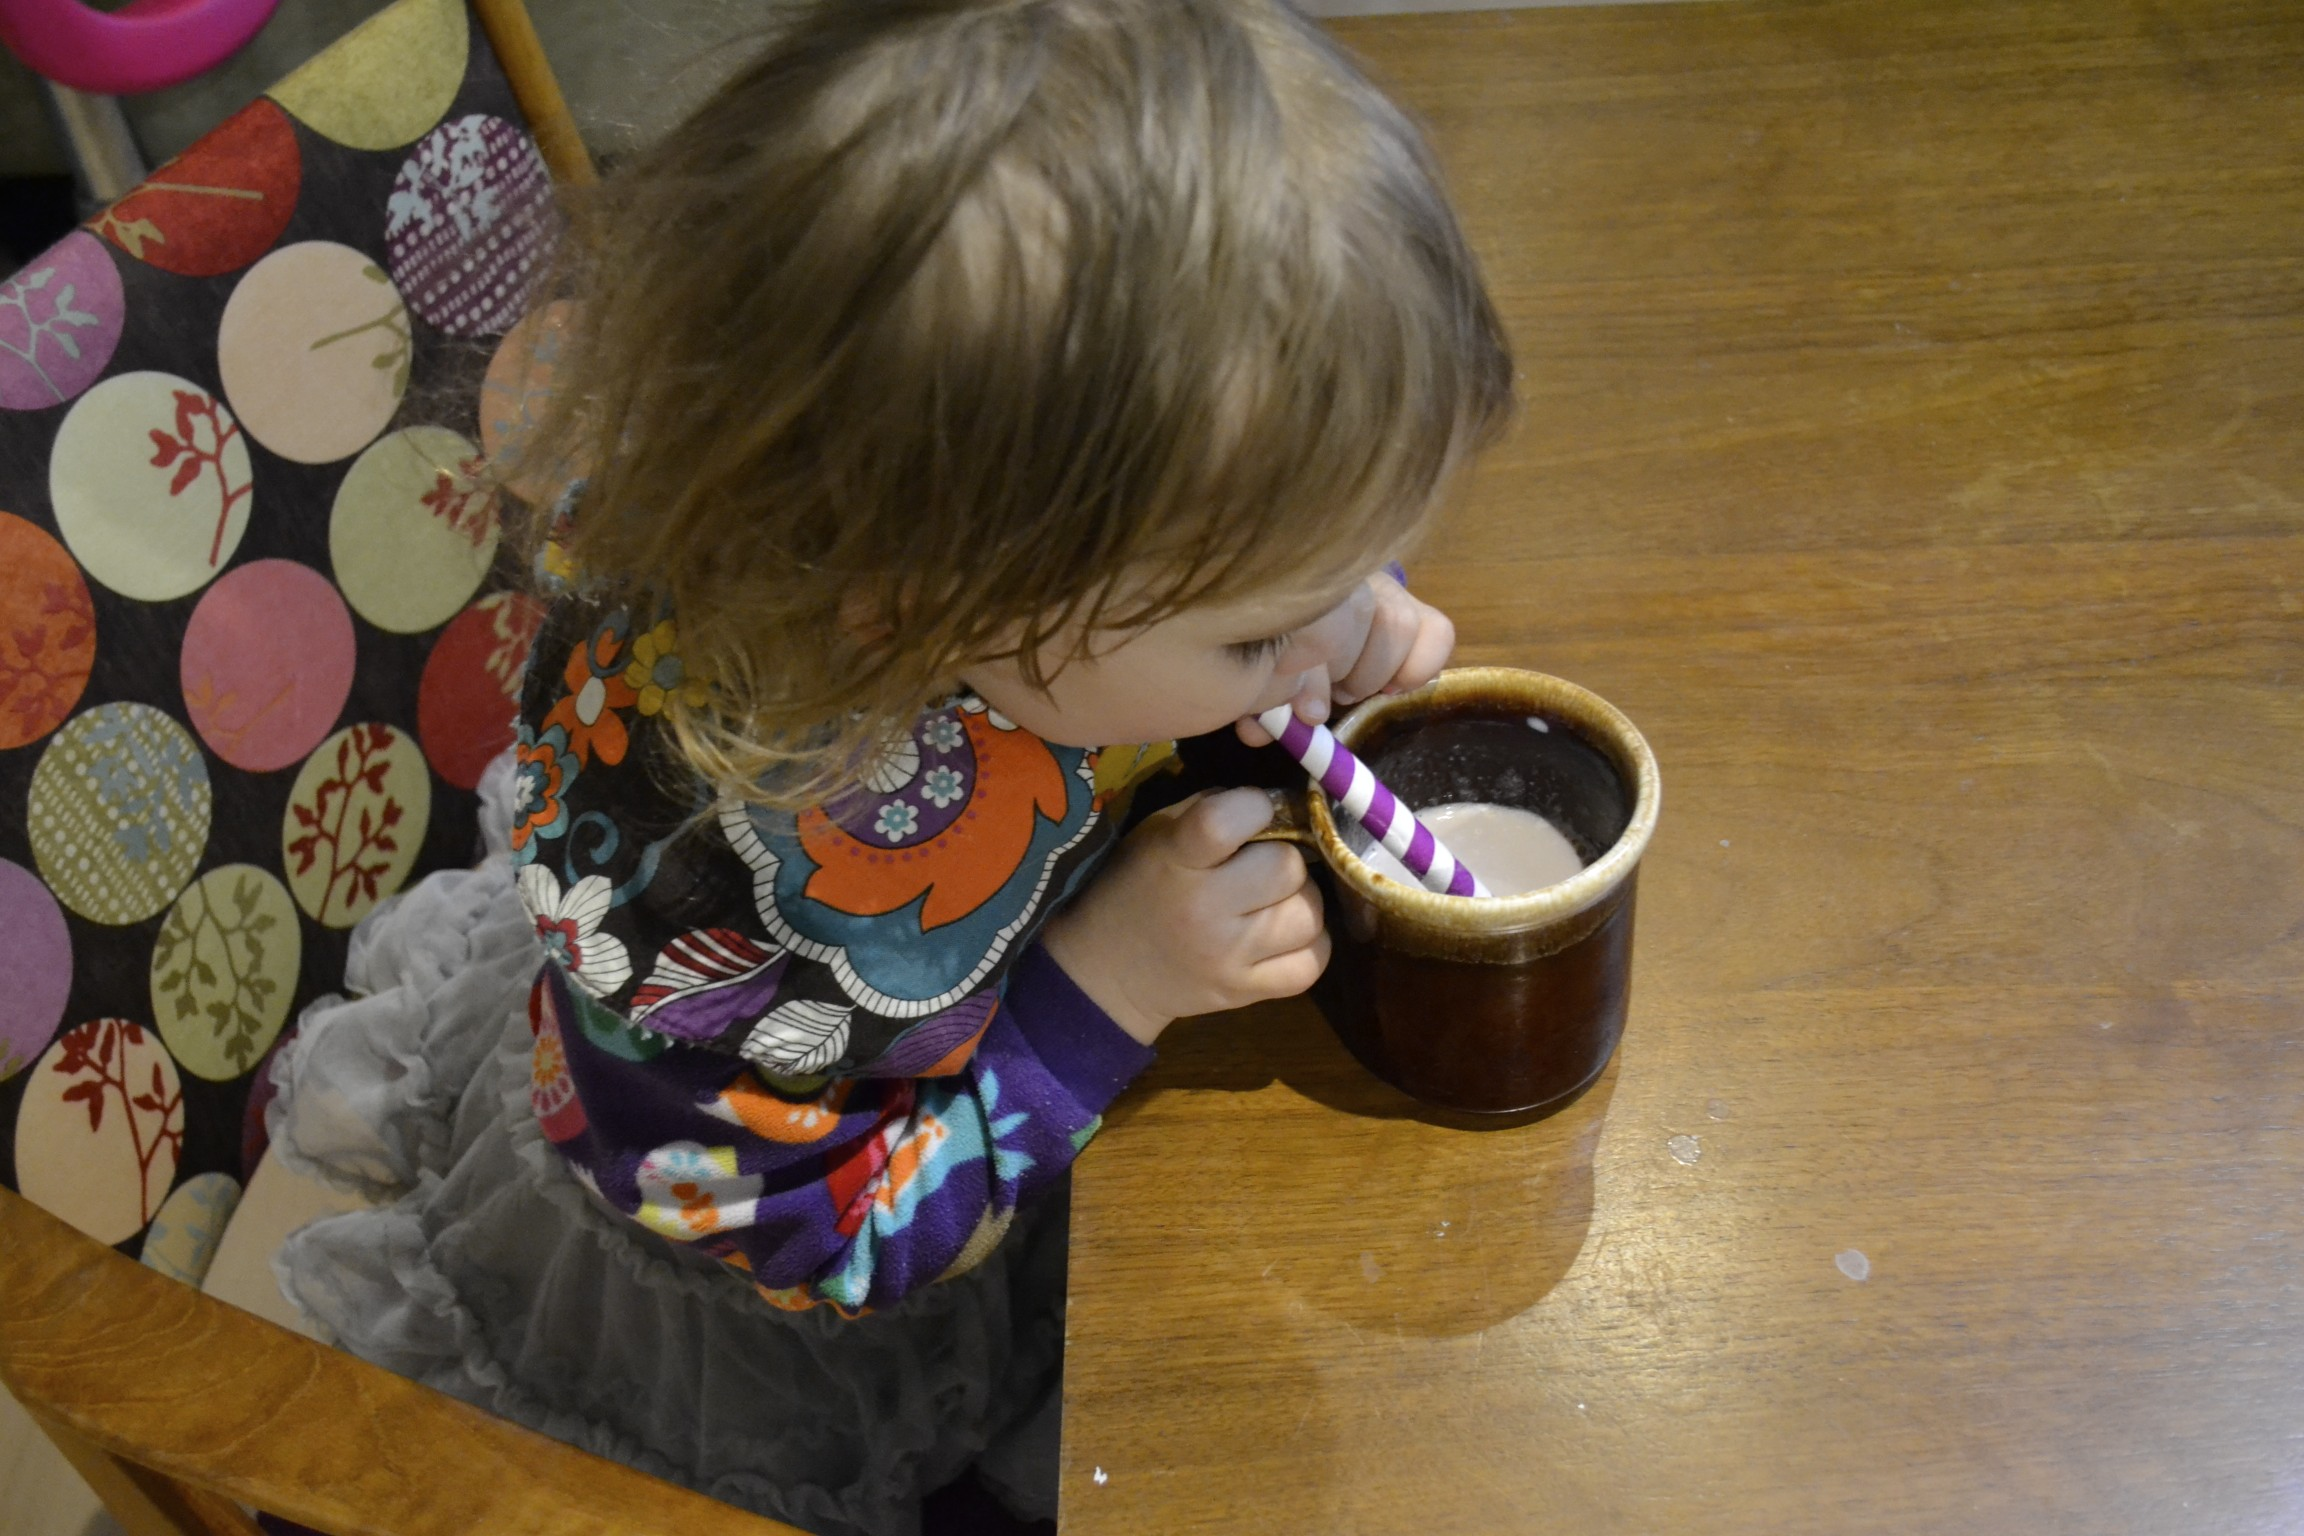 hot cocoa with stripy straws is always a good choice